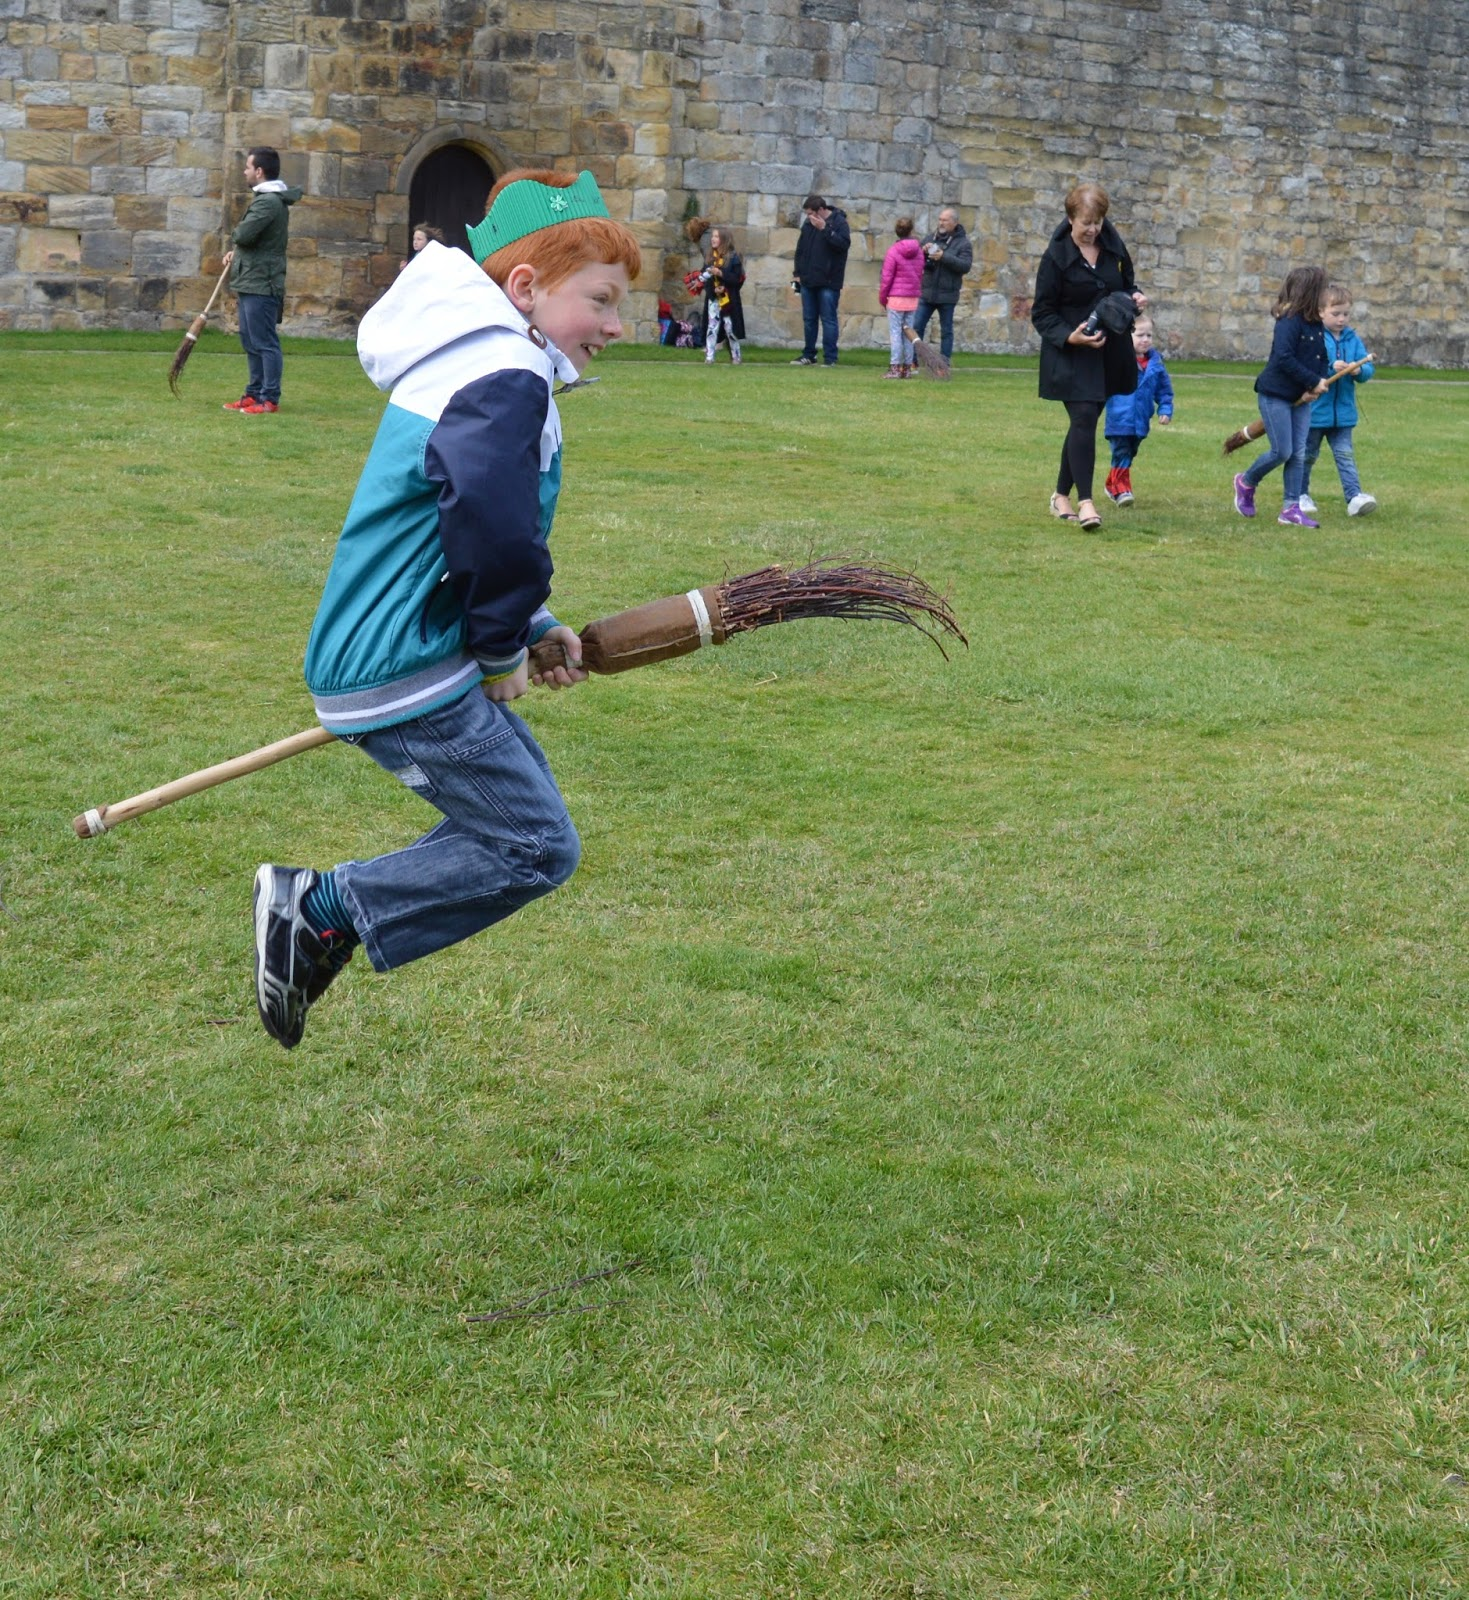 Alnwick Castle | Harry Potter Broomstick Training | Flying a broomstick